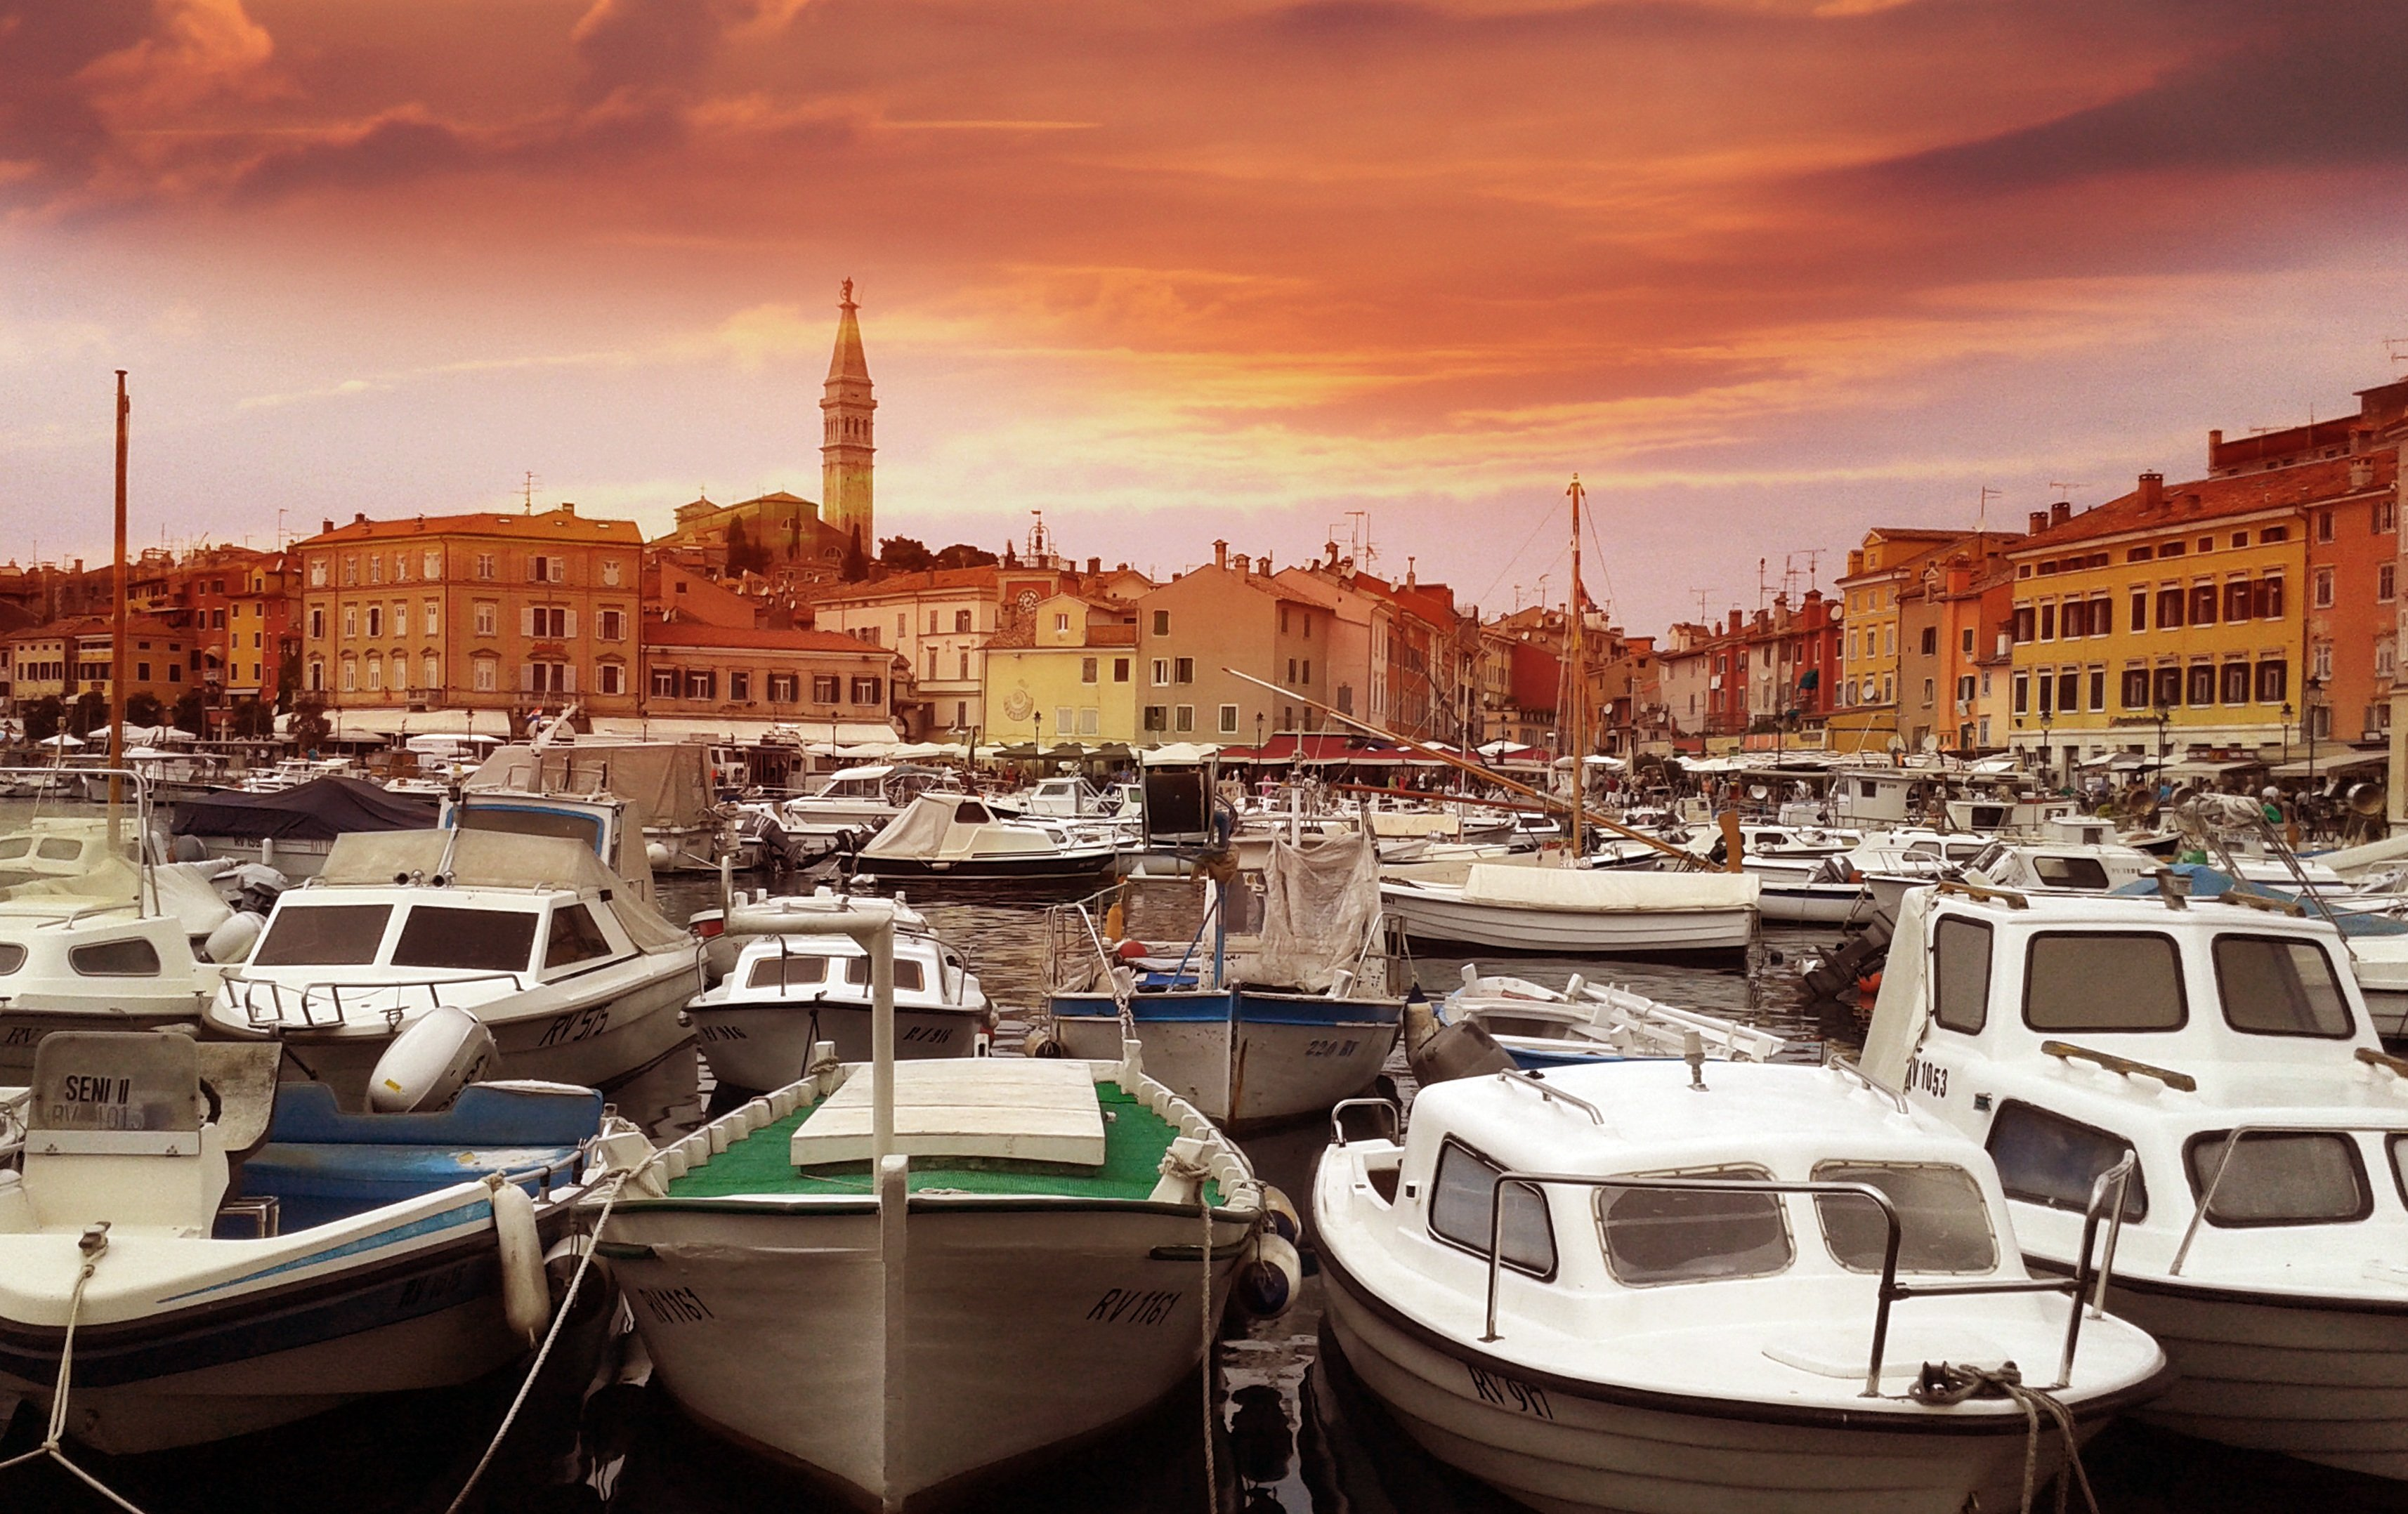 Image of boats in a port in Croatia